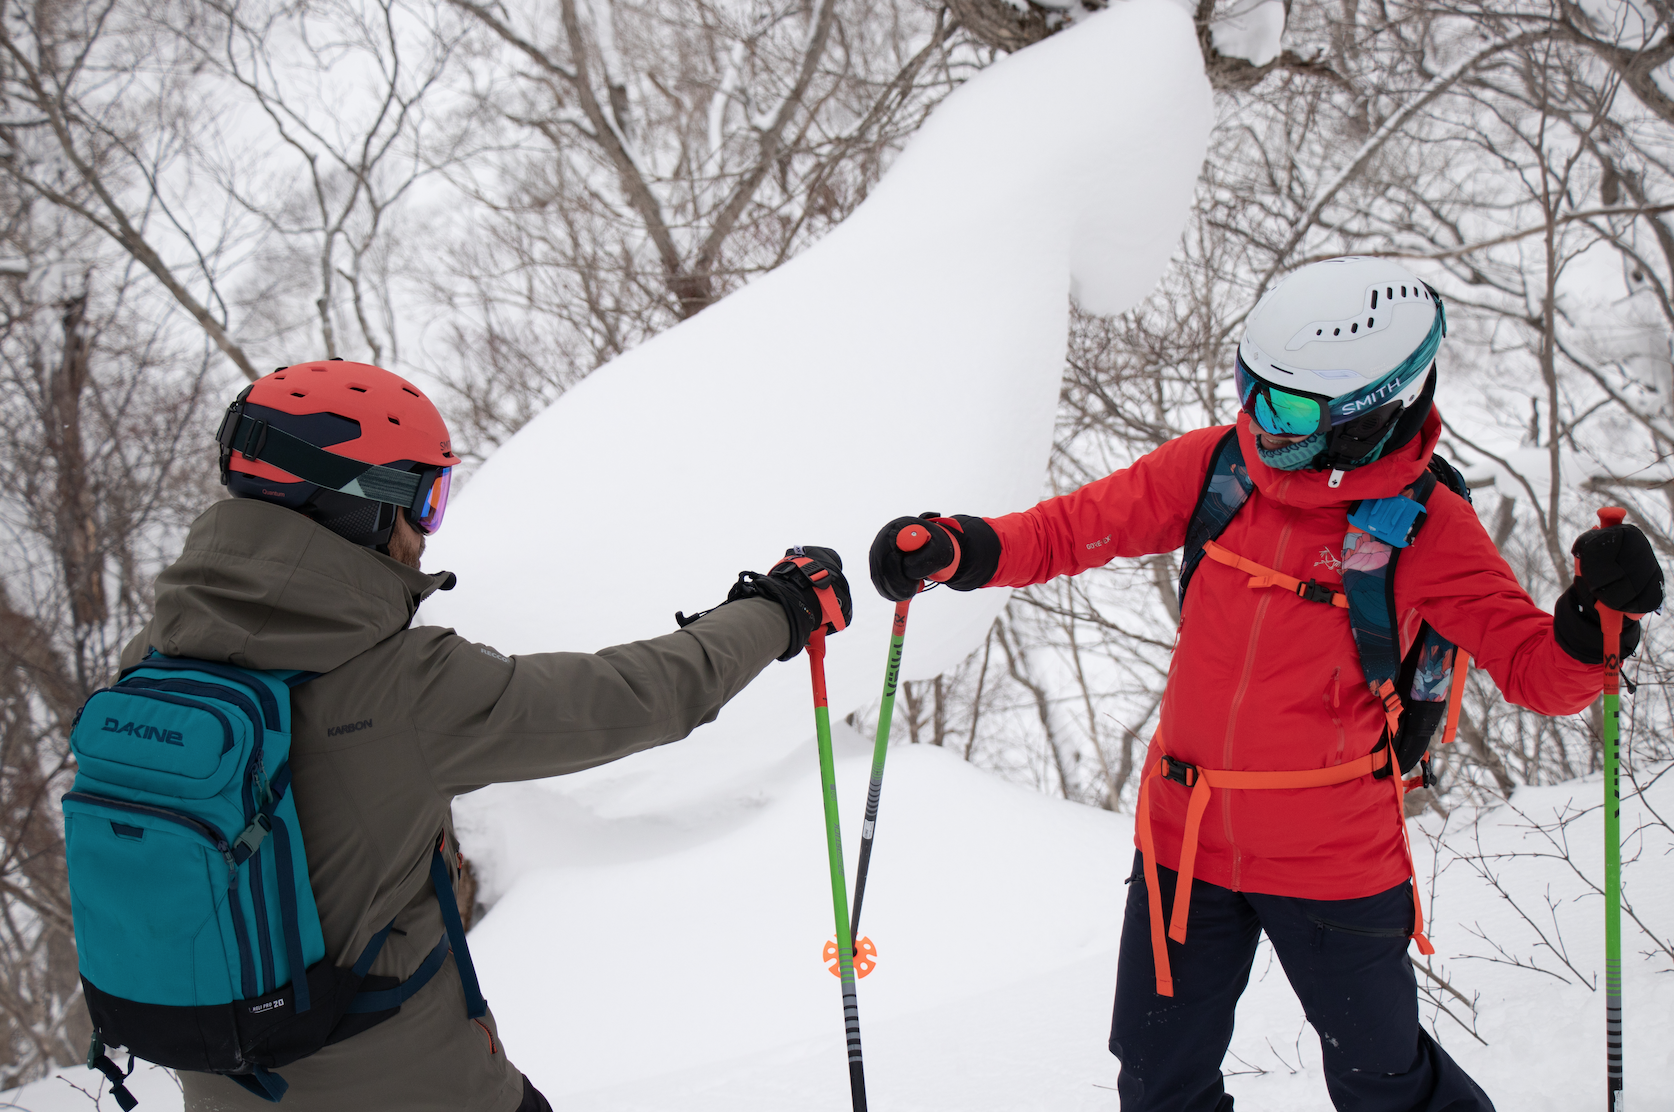 fist punch in japan while skiing